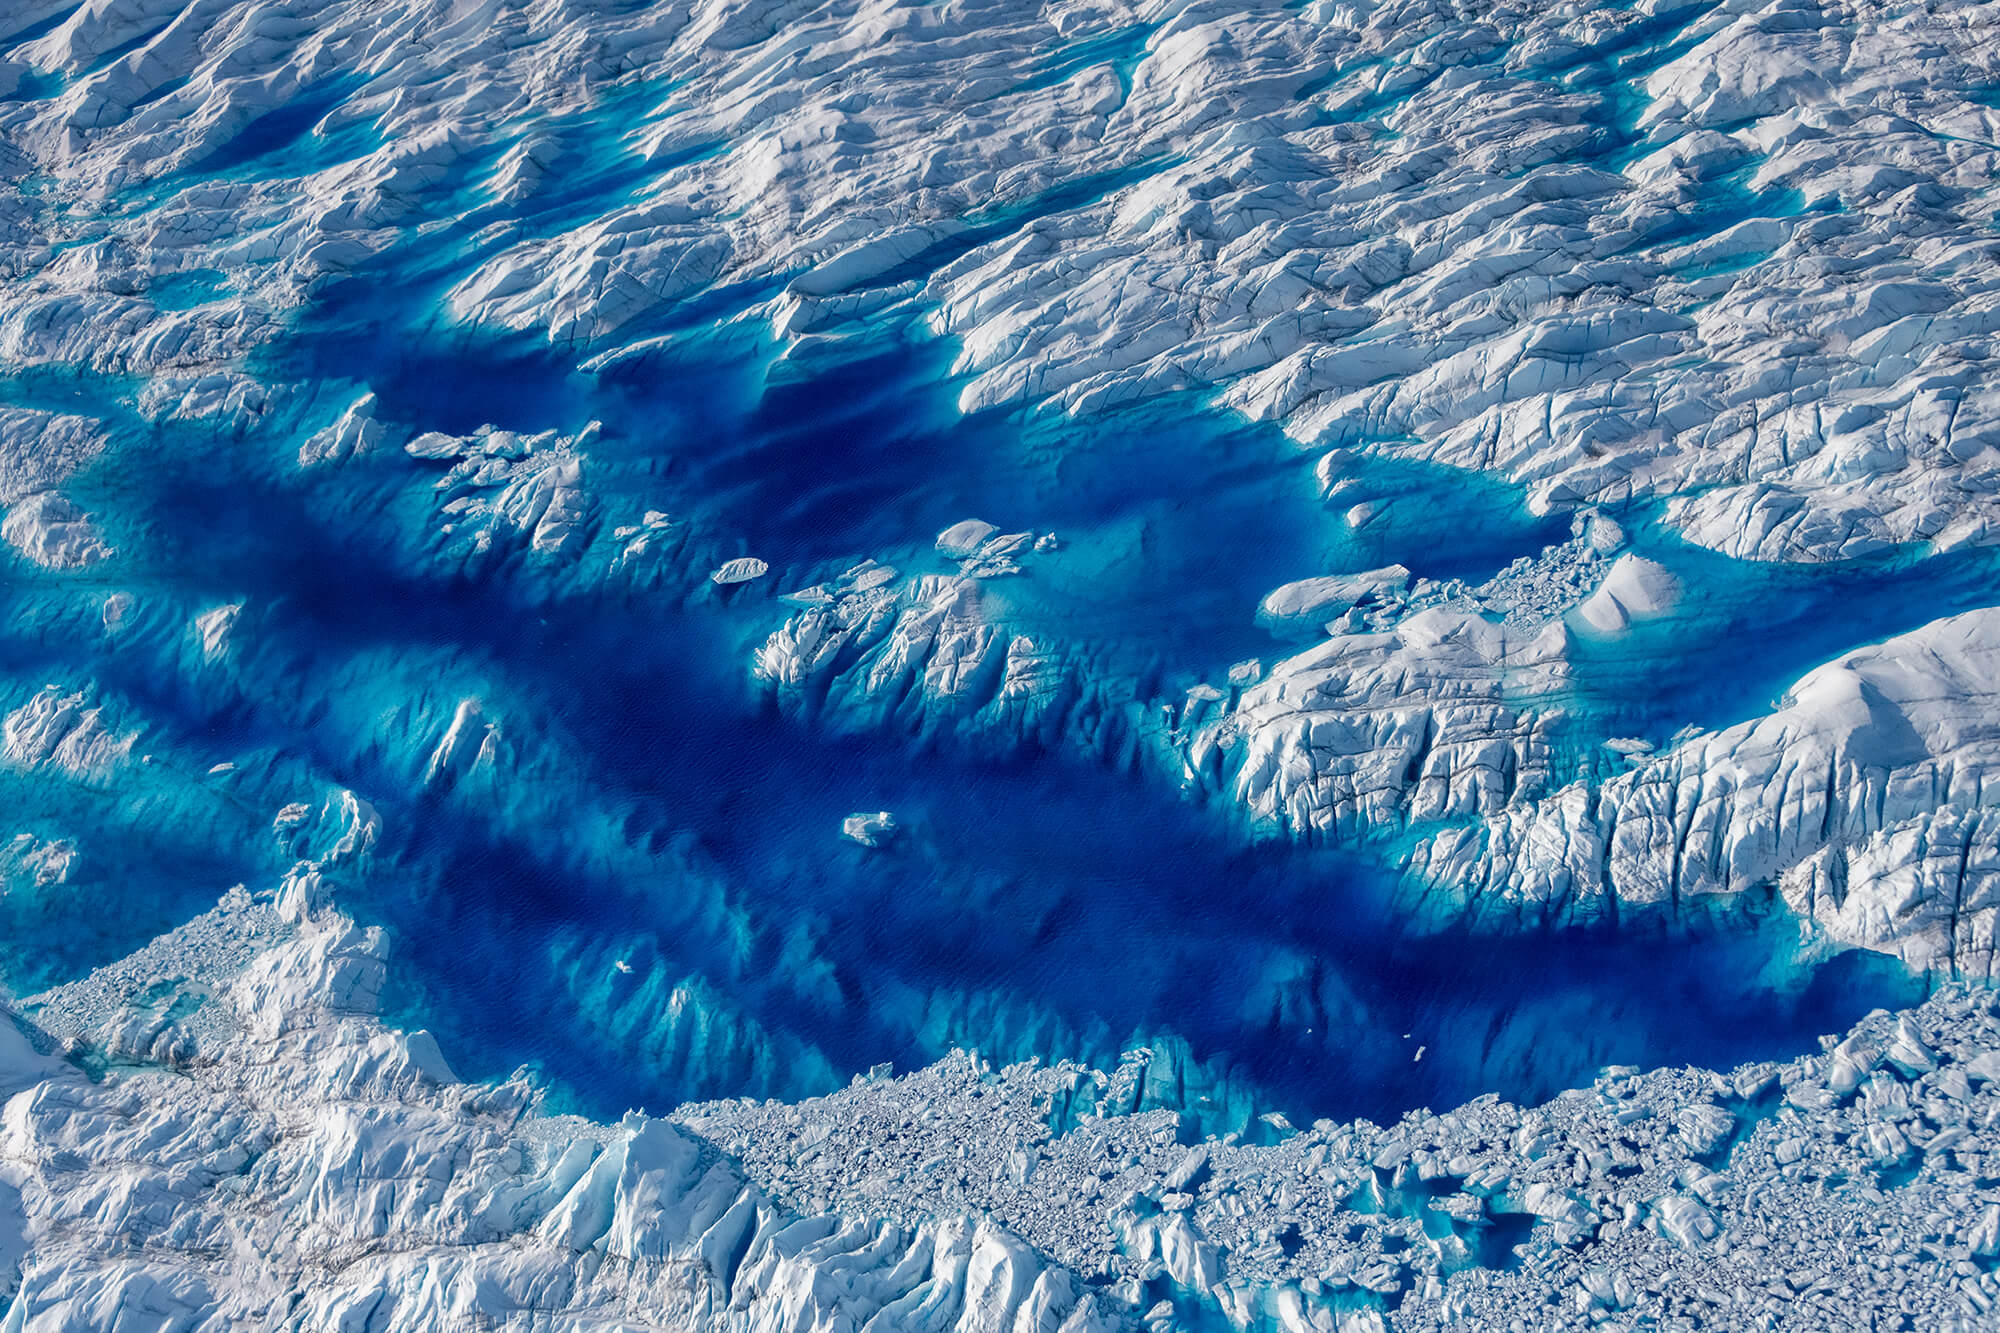 BlueIce-Koepping